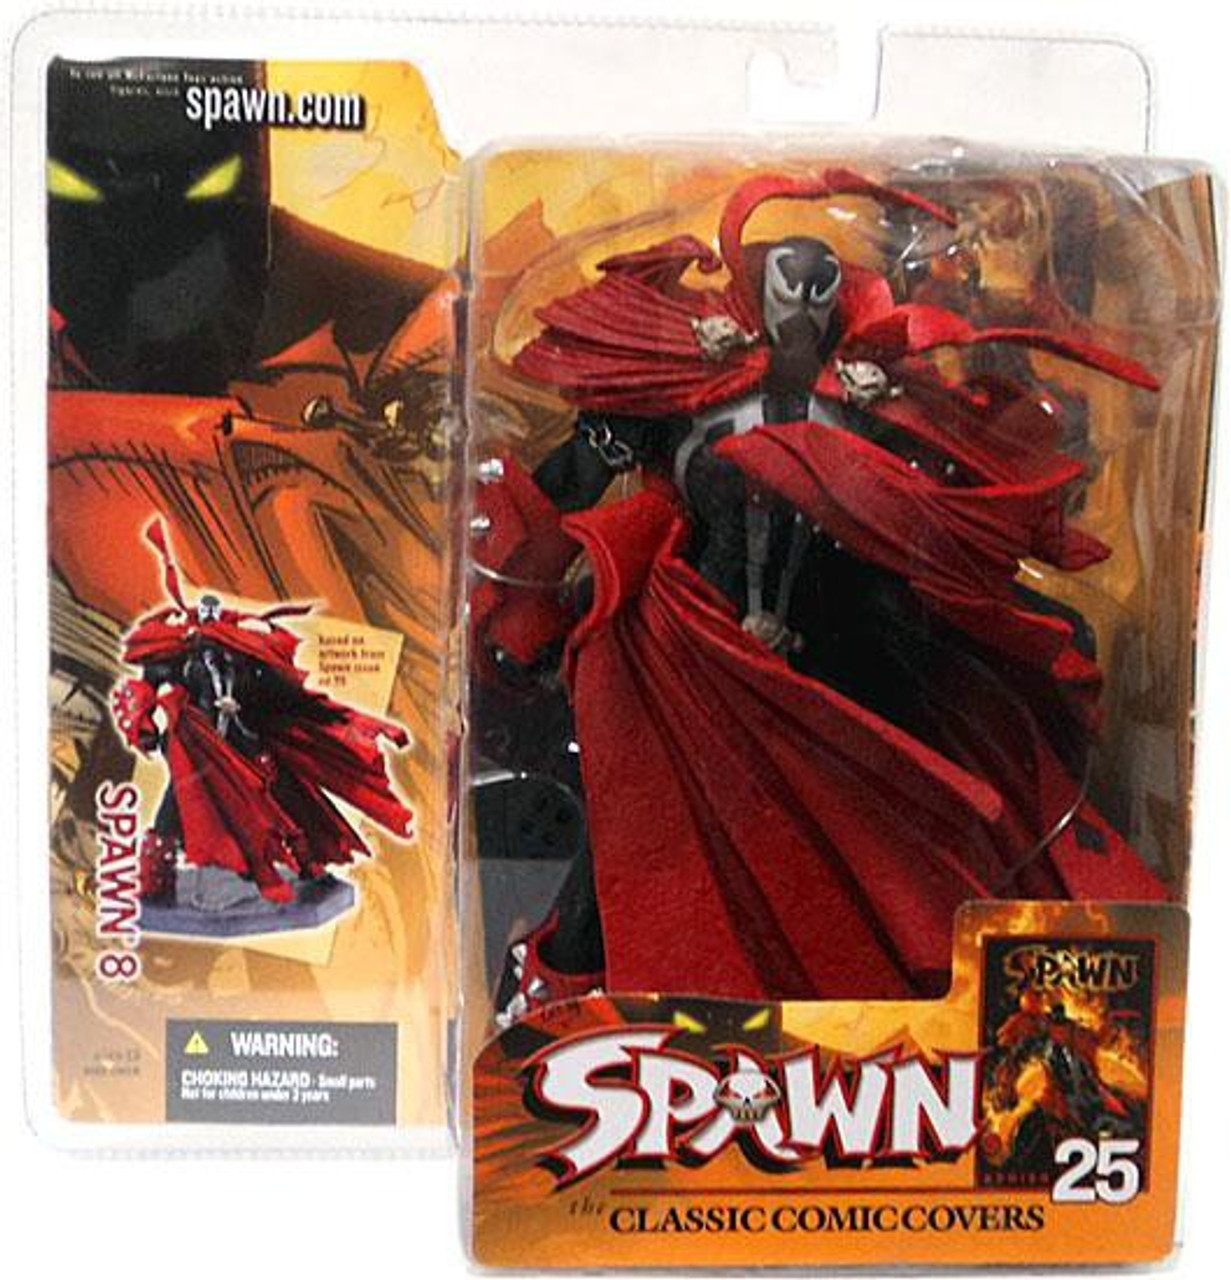 McFarlane Toys Series 25 The Classic Comic Covers Spawn 8 Action Figure